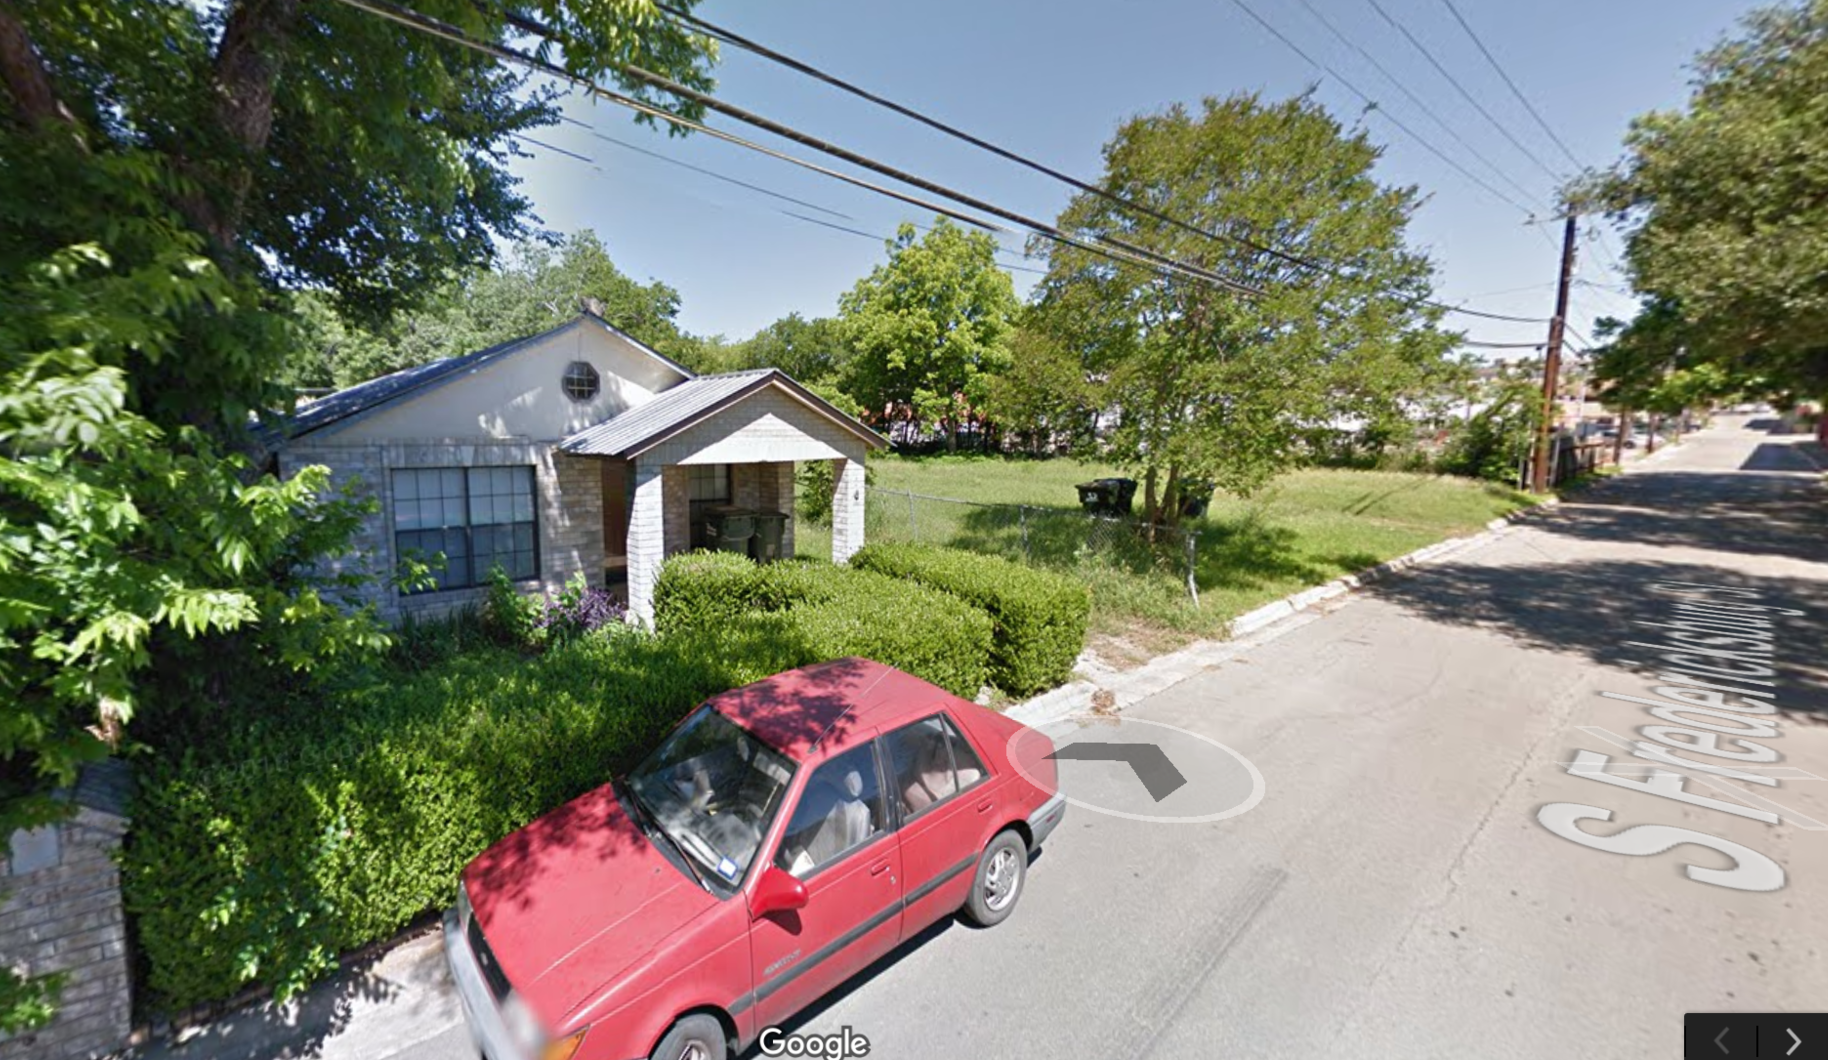 T-5 zoning in San Marcos, TX. Should be T-2 or, at most, T-3 since that is the next increment of intensity. T-5 simply distorts the underlying land values, jacks up housing prices and stagnates the entire neighborhood. Image from Google.